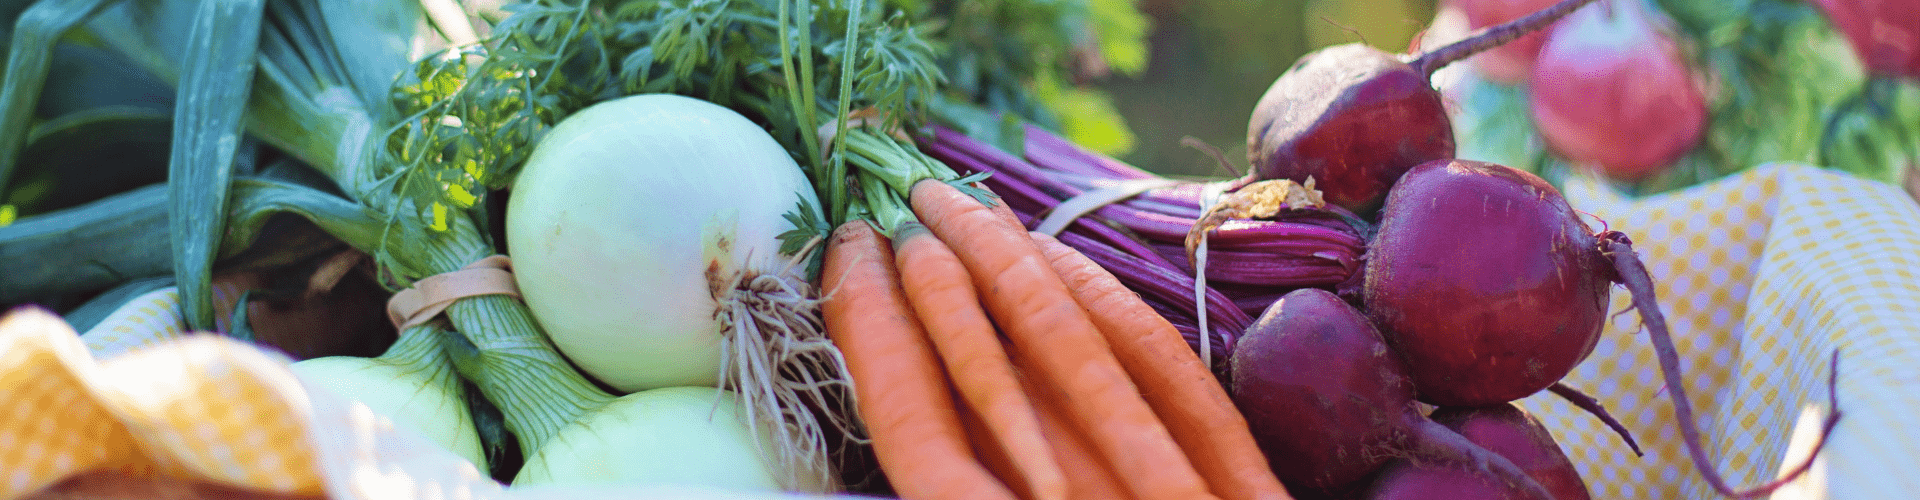 incorporate health & Fitness into your home, veggies